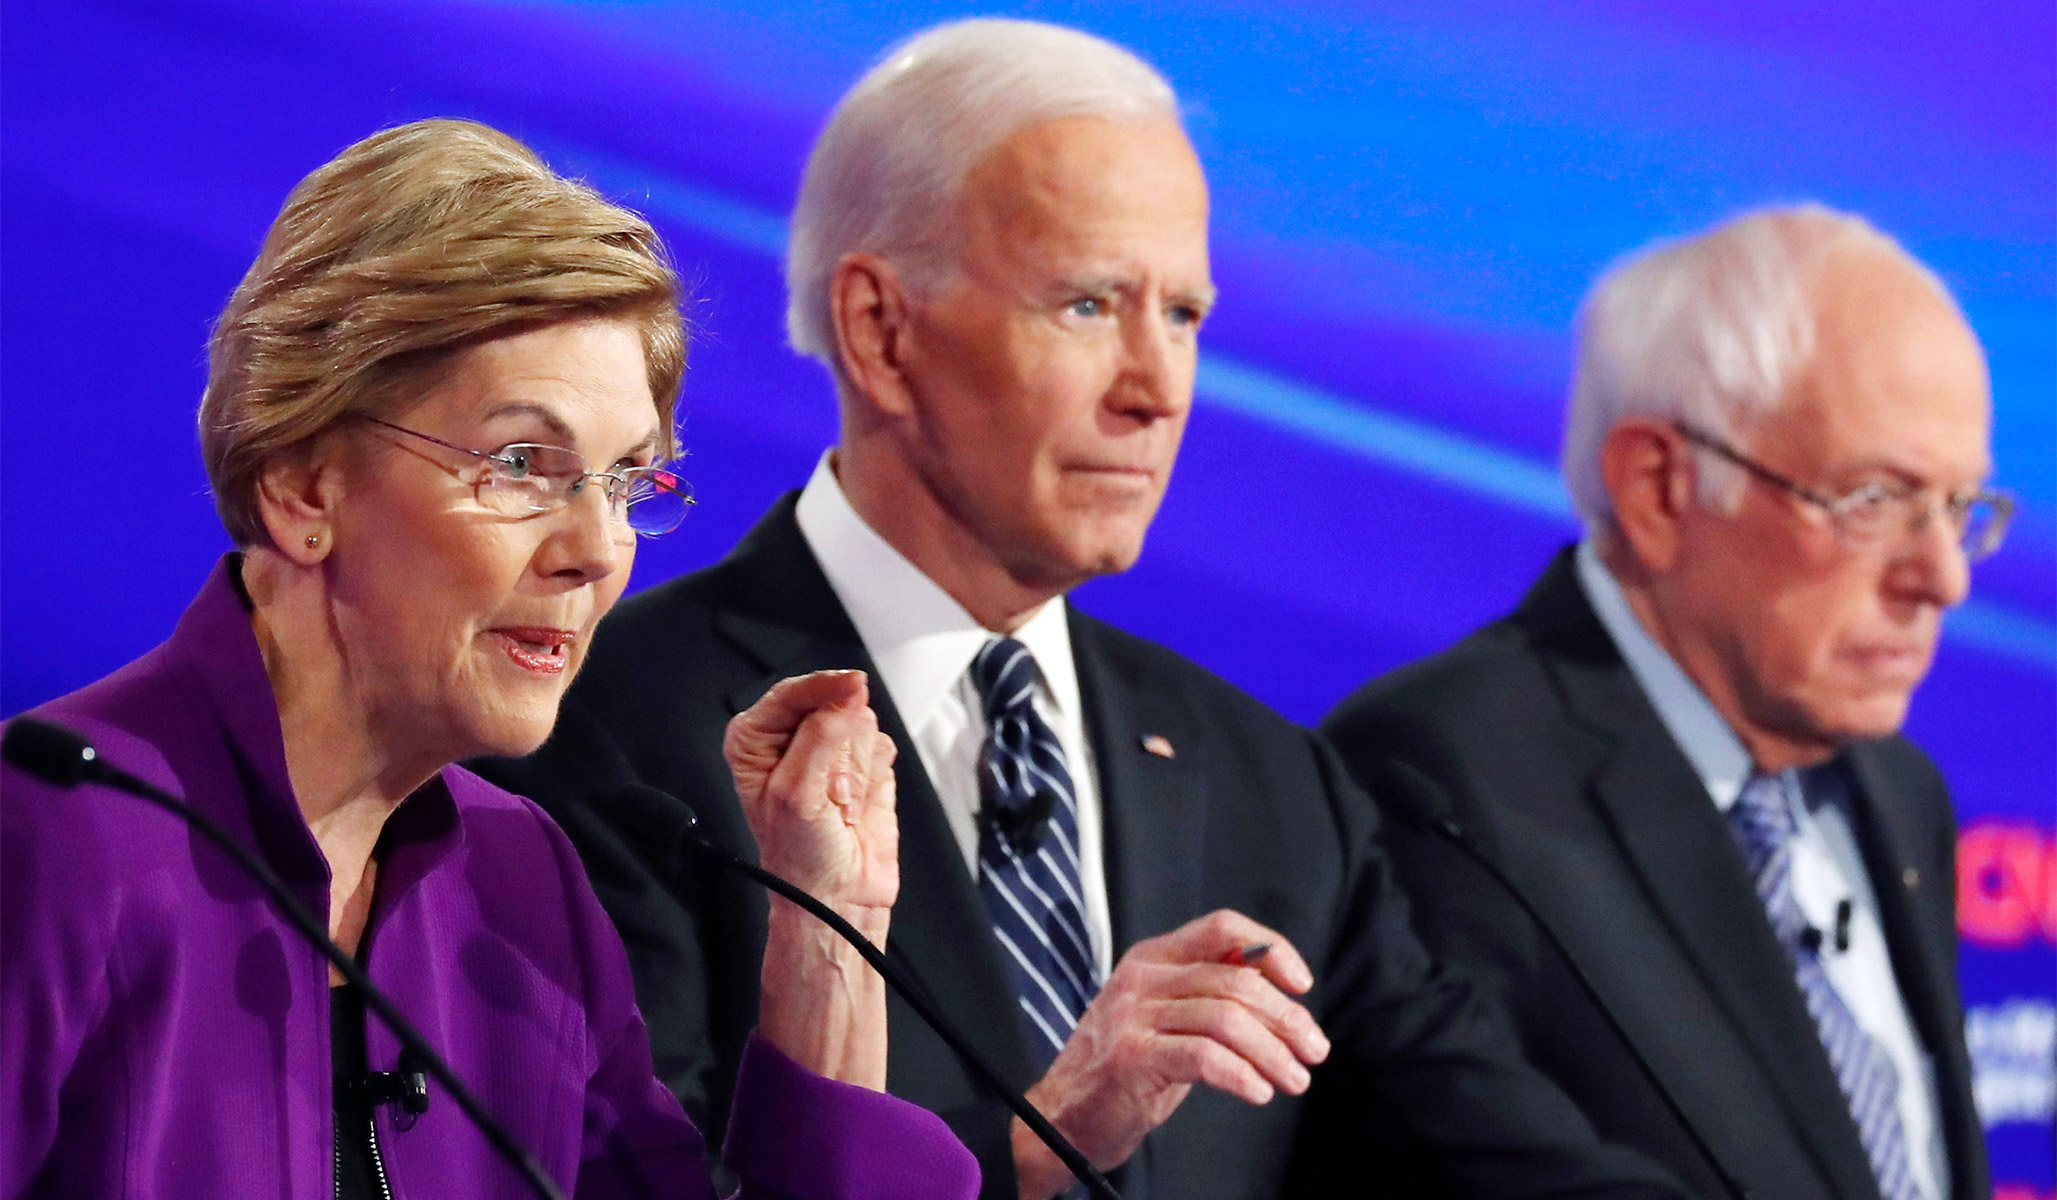 Warren to Sanders Post-Debate: 'I Think You Called Me a Liar on National TV'